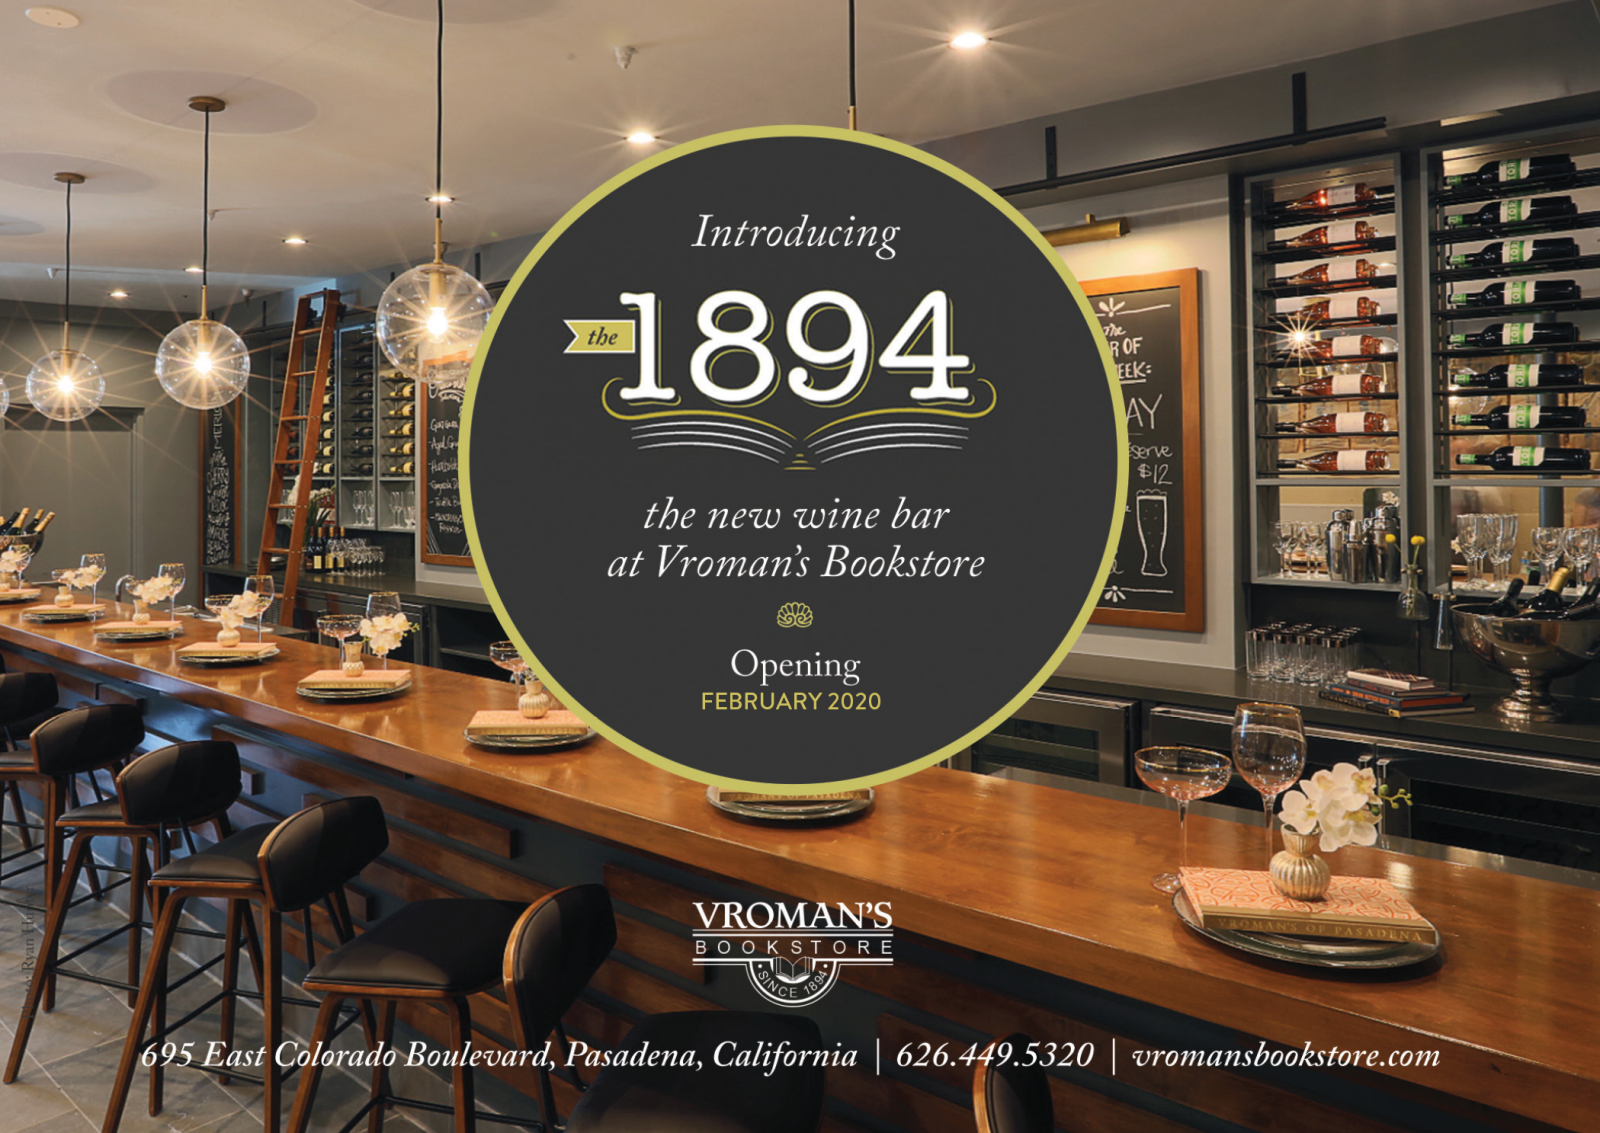 Introducing the new the 1894 Wine Bar at Vroman's Bookstore